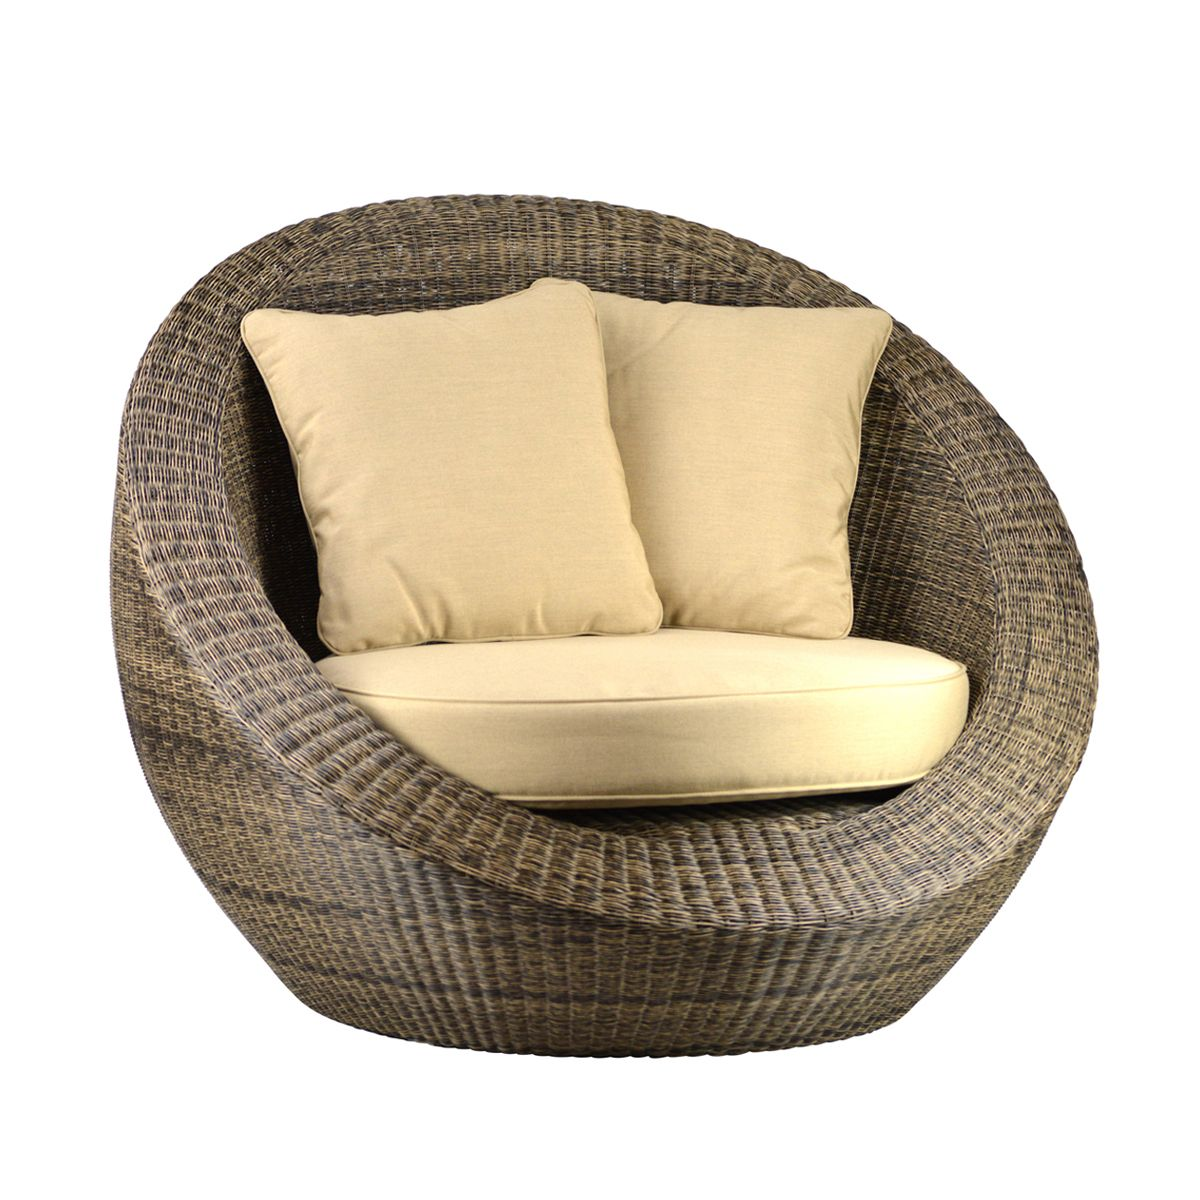 Outdoor Woven Fiber Round Chair Is High Quality Durable Poly Resin Over A Strong Sturdy Aluminum Base Add This Chair T Outdoor Chairs Round Chair Bubble Chair